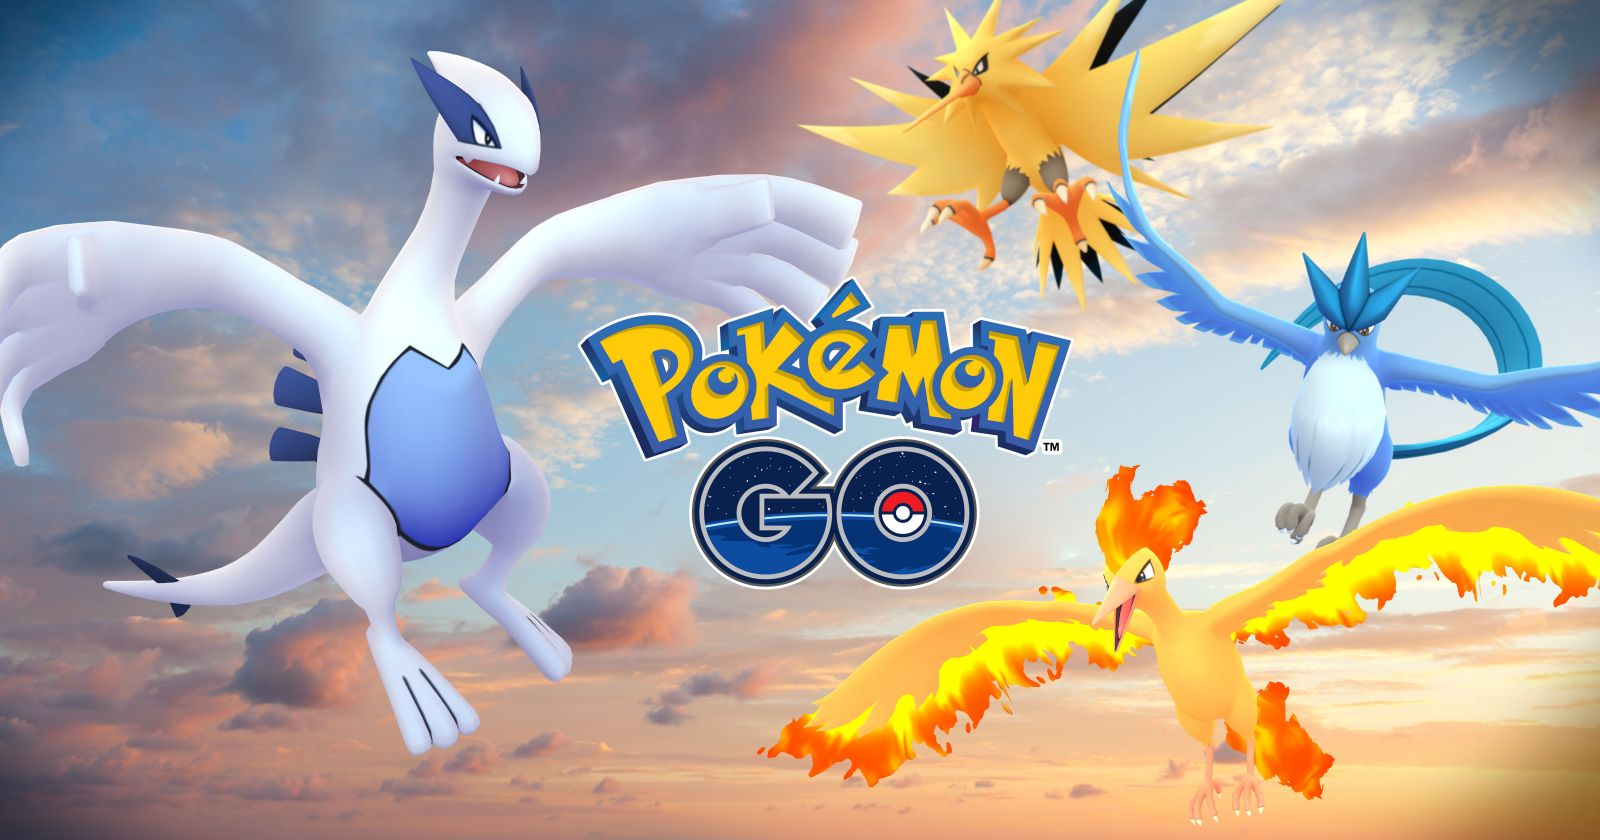 Pokemon GO Legendary Trio Is Going On